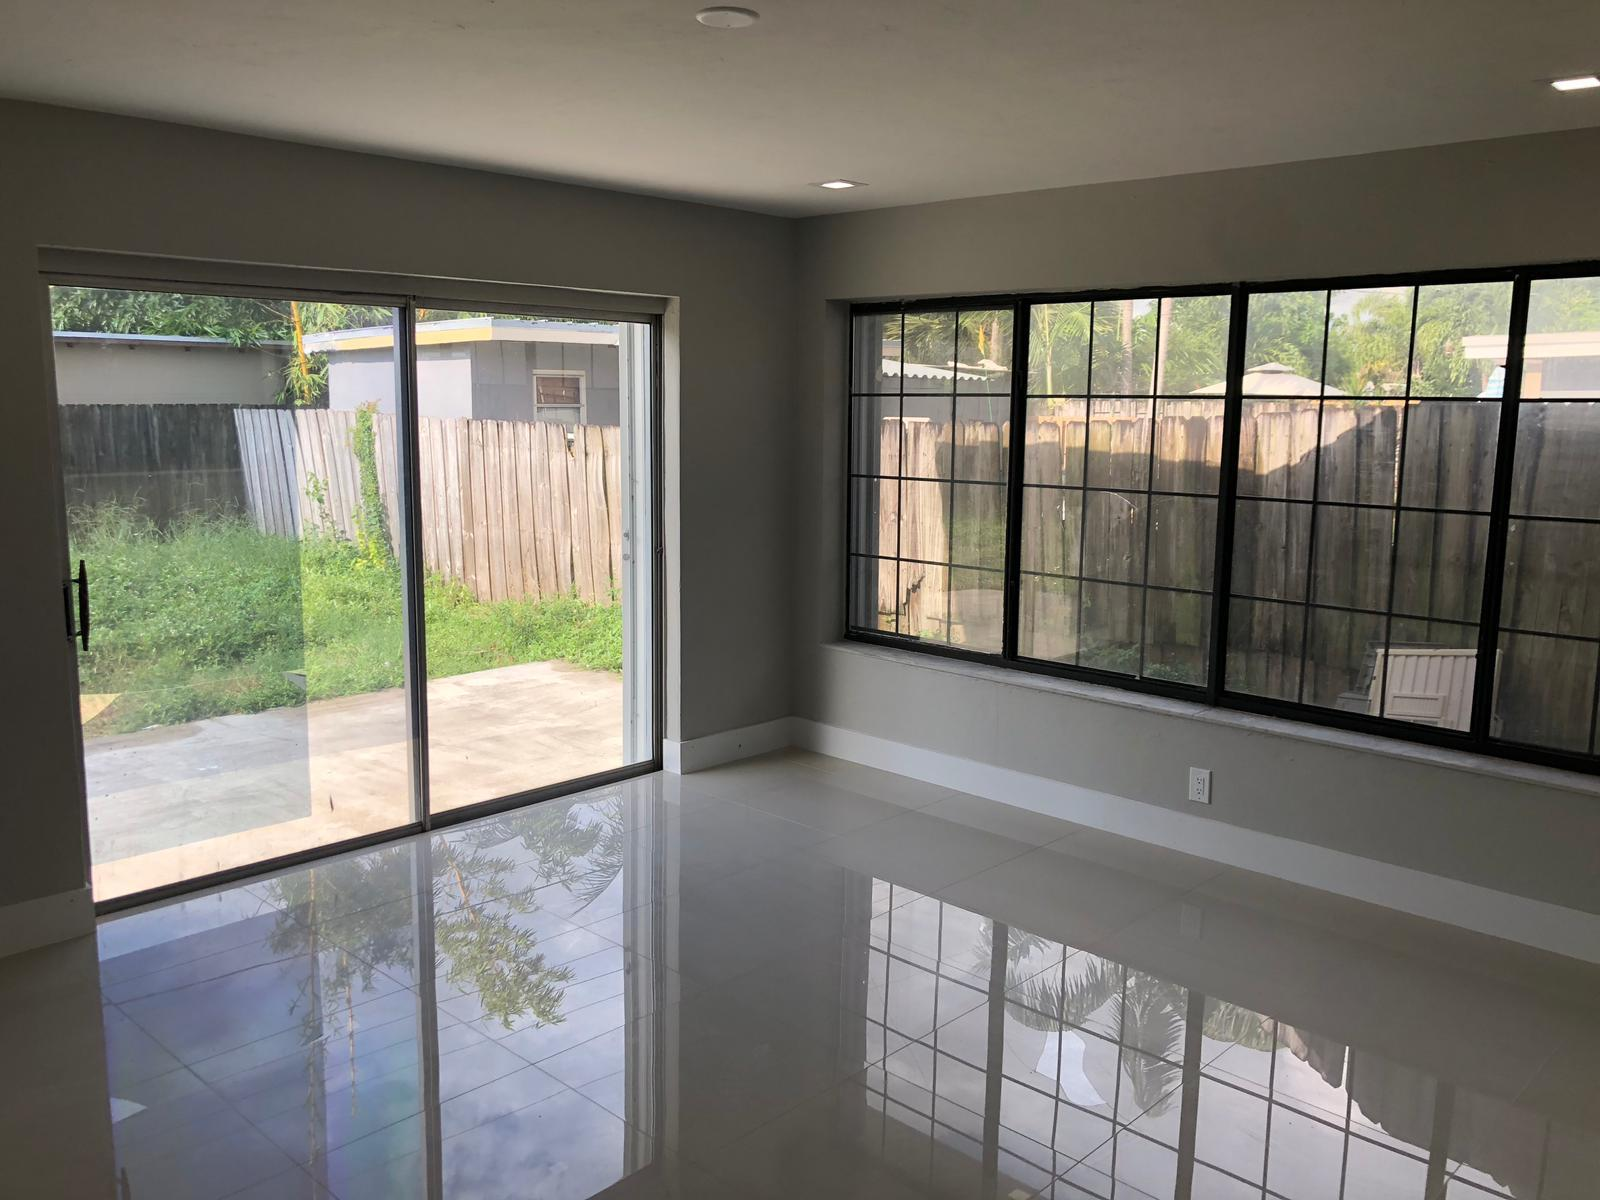 210 NW 55TH ST (4)